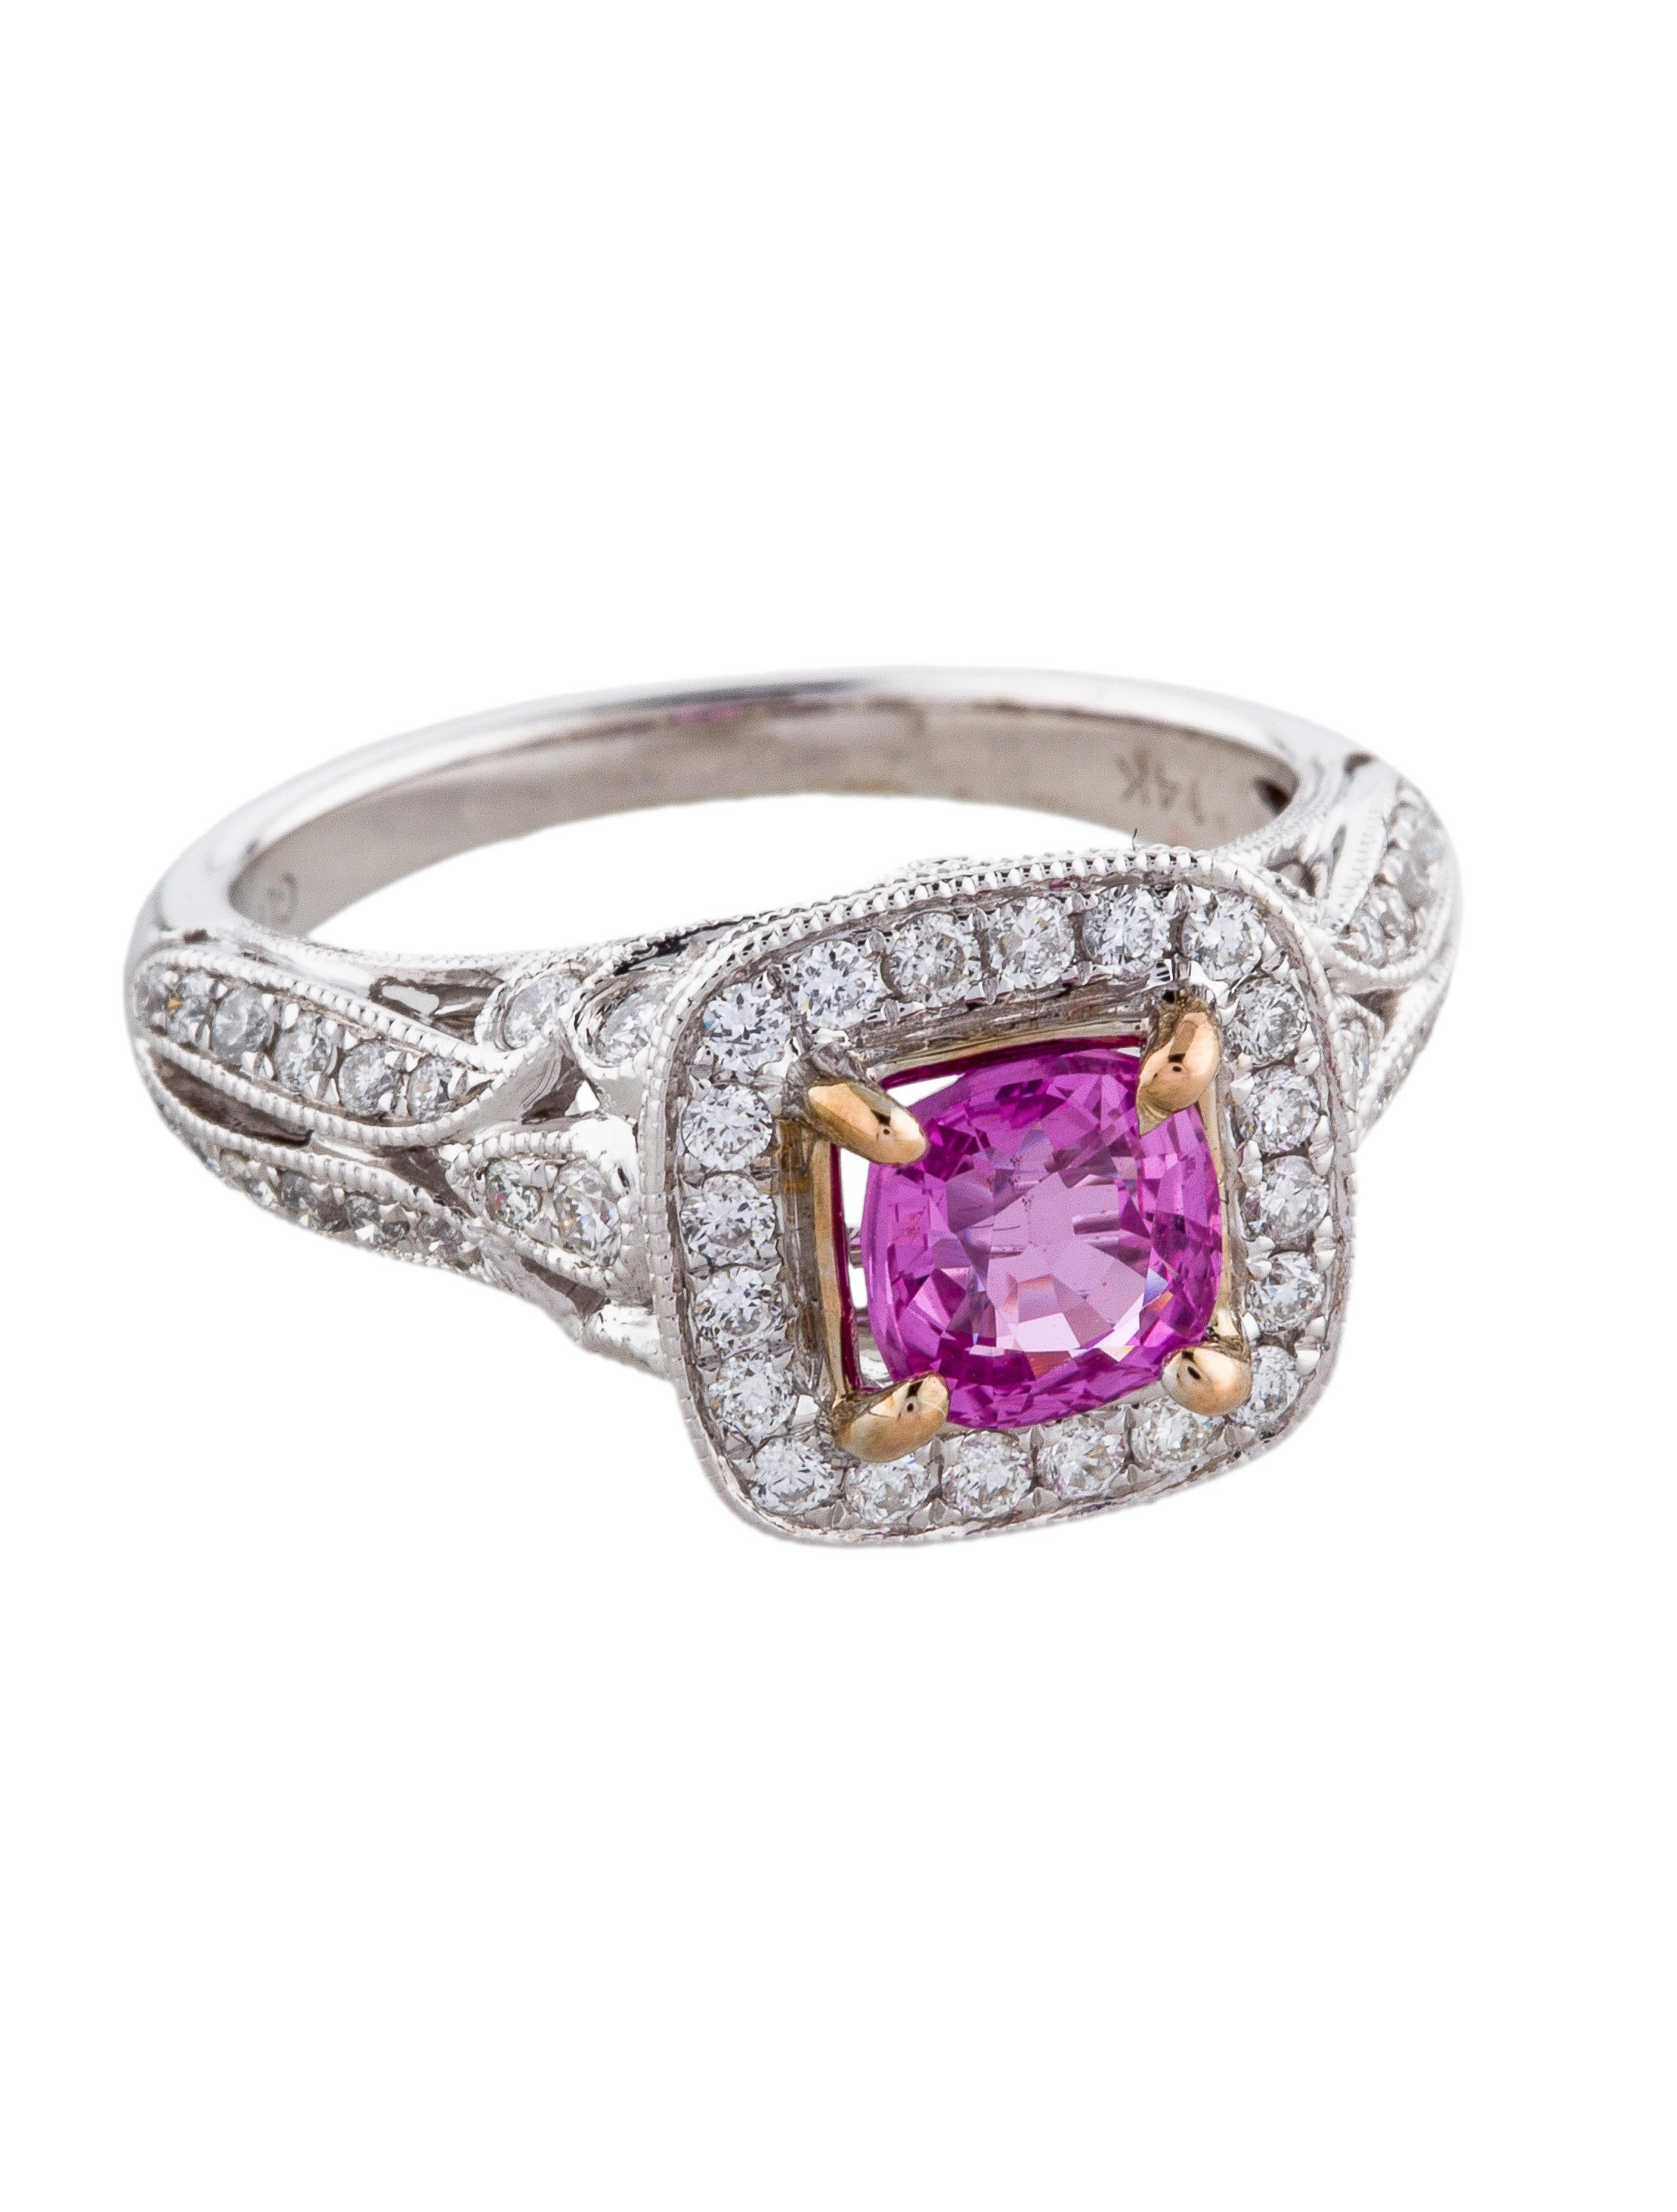 Diamond amp Pink Sapphire Cocktail Ring Rings RRING38365  : RRING383651enlarged from www.therealreal.com size 2269 x 2993 jpeg 386kB